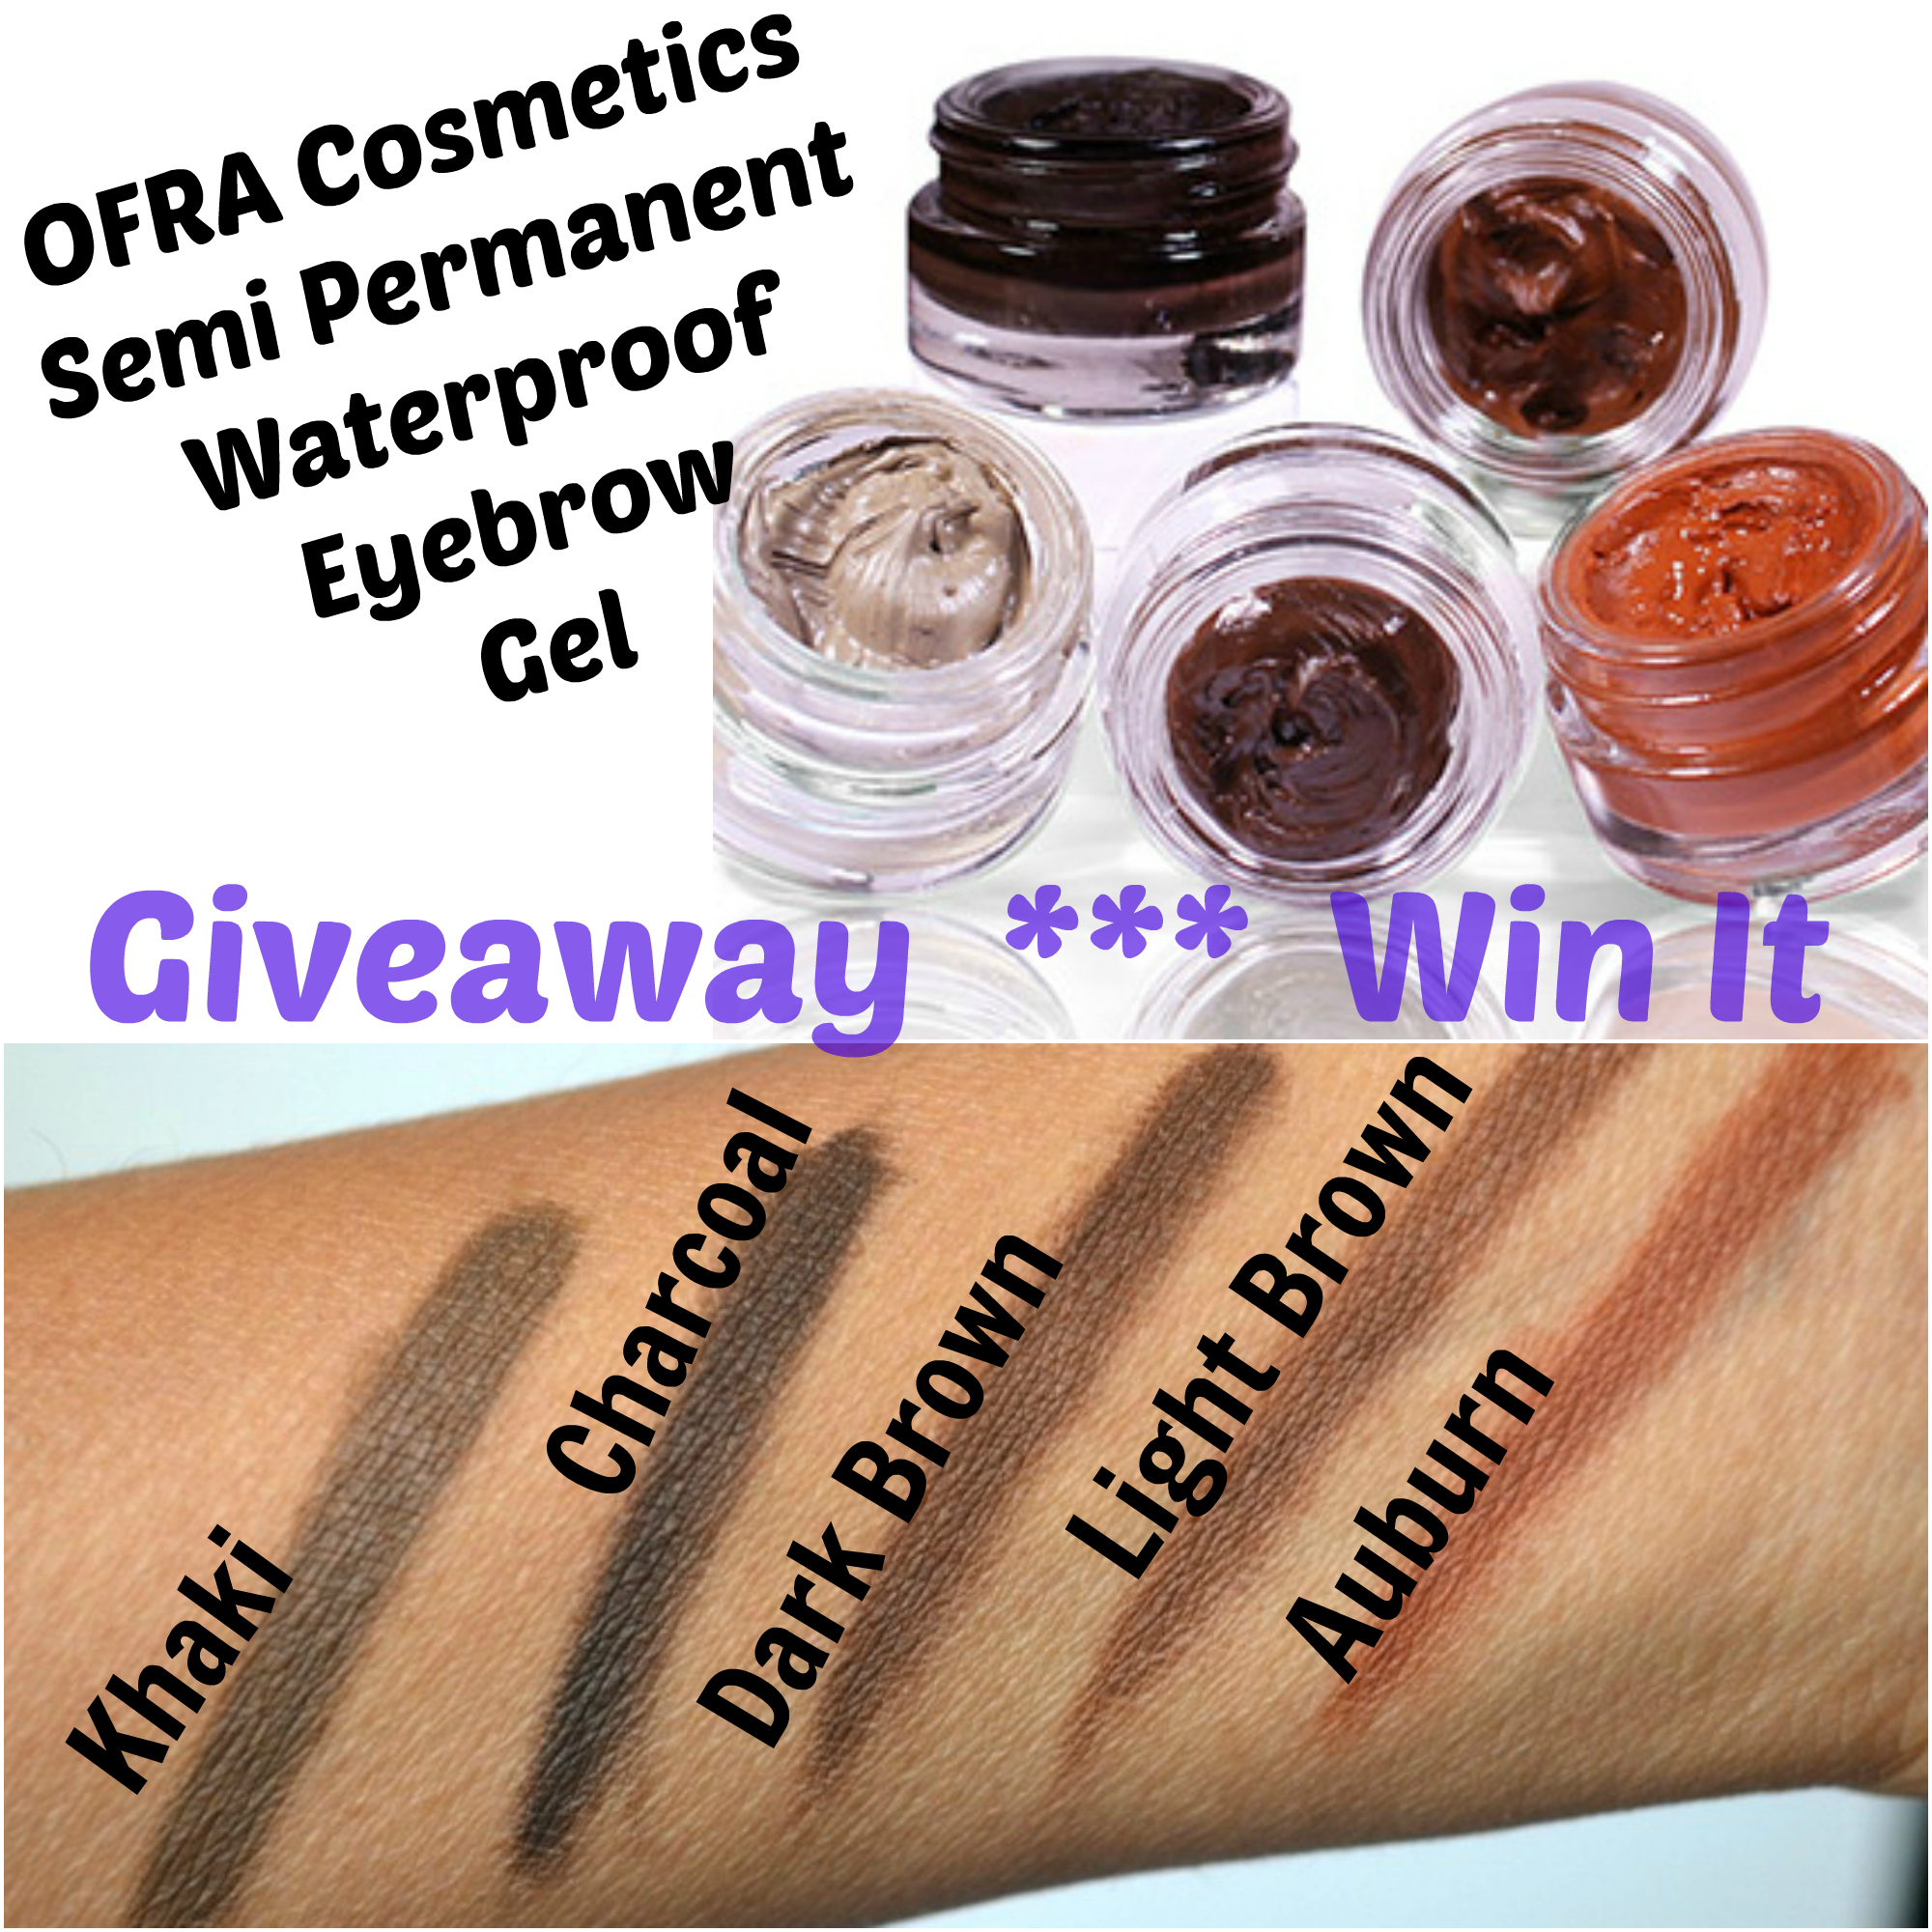 OFRA Cosmetics Semi Permanent Waterproof Eyebrow Gel Giveaway